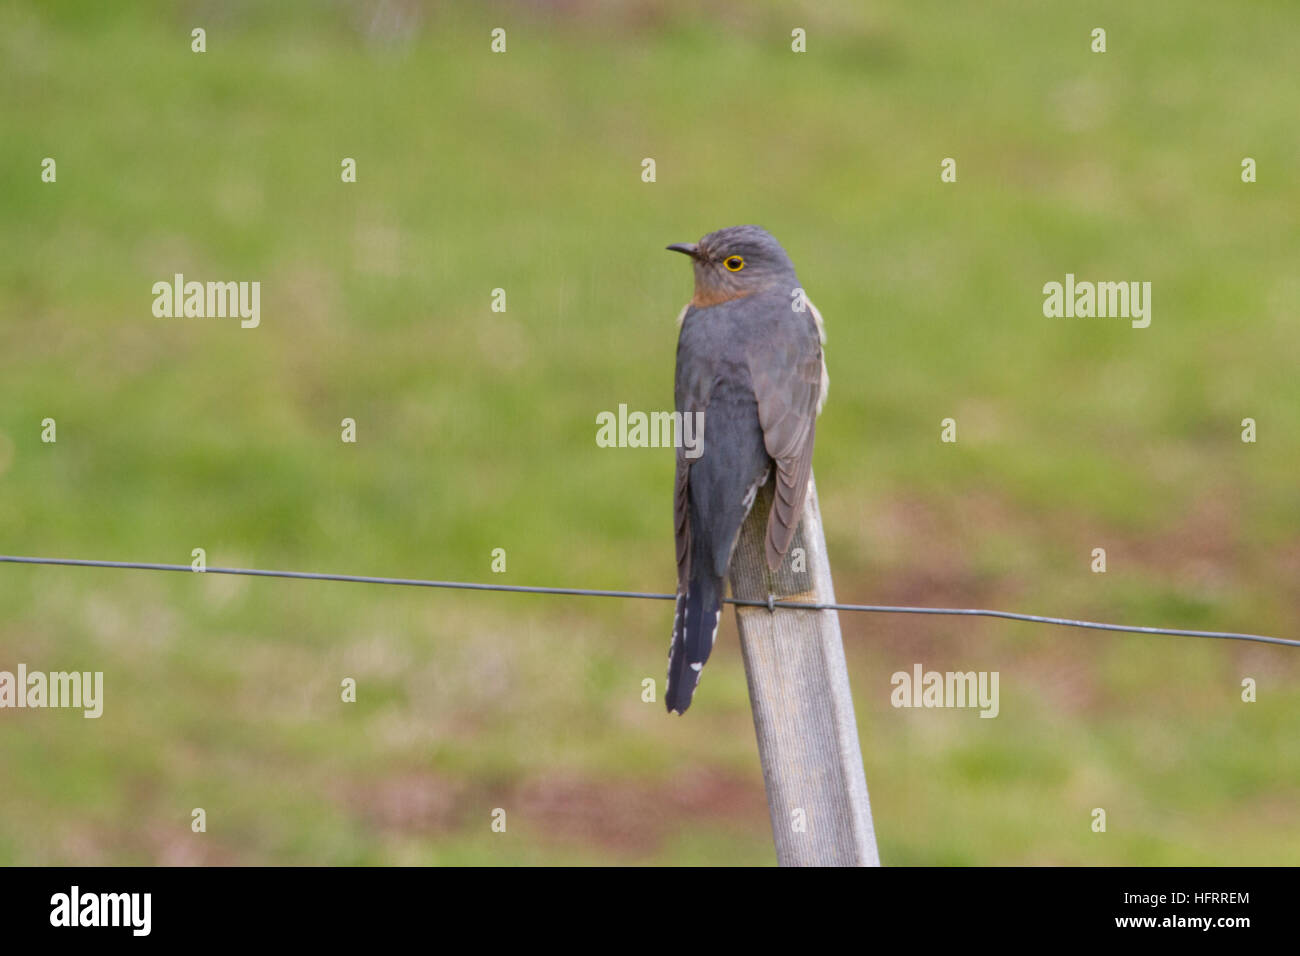 Fan-tailed Cuckoo (Cacomantis flabelliformis) perched on a post - Stock Image